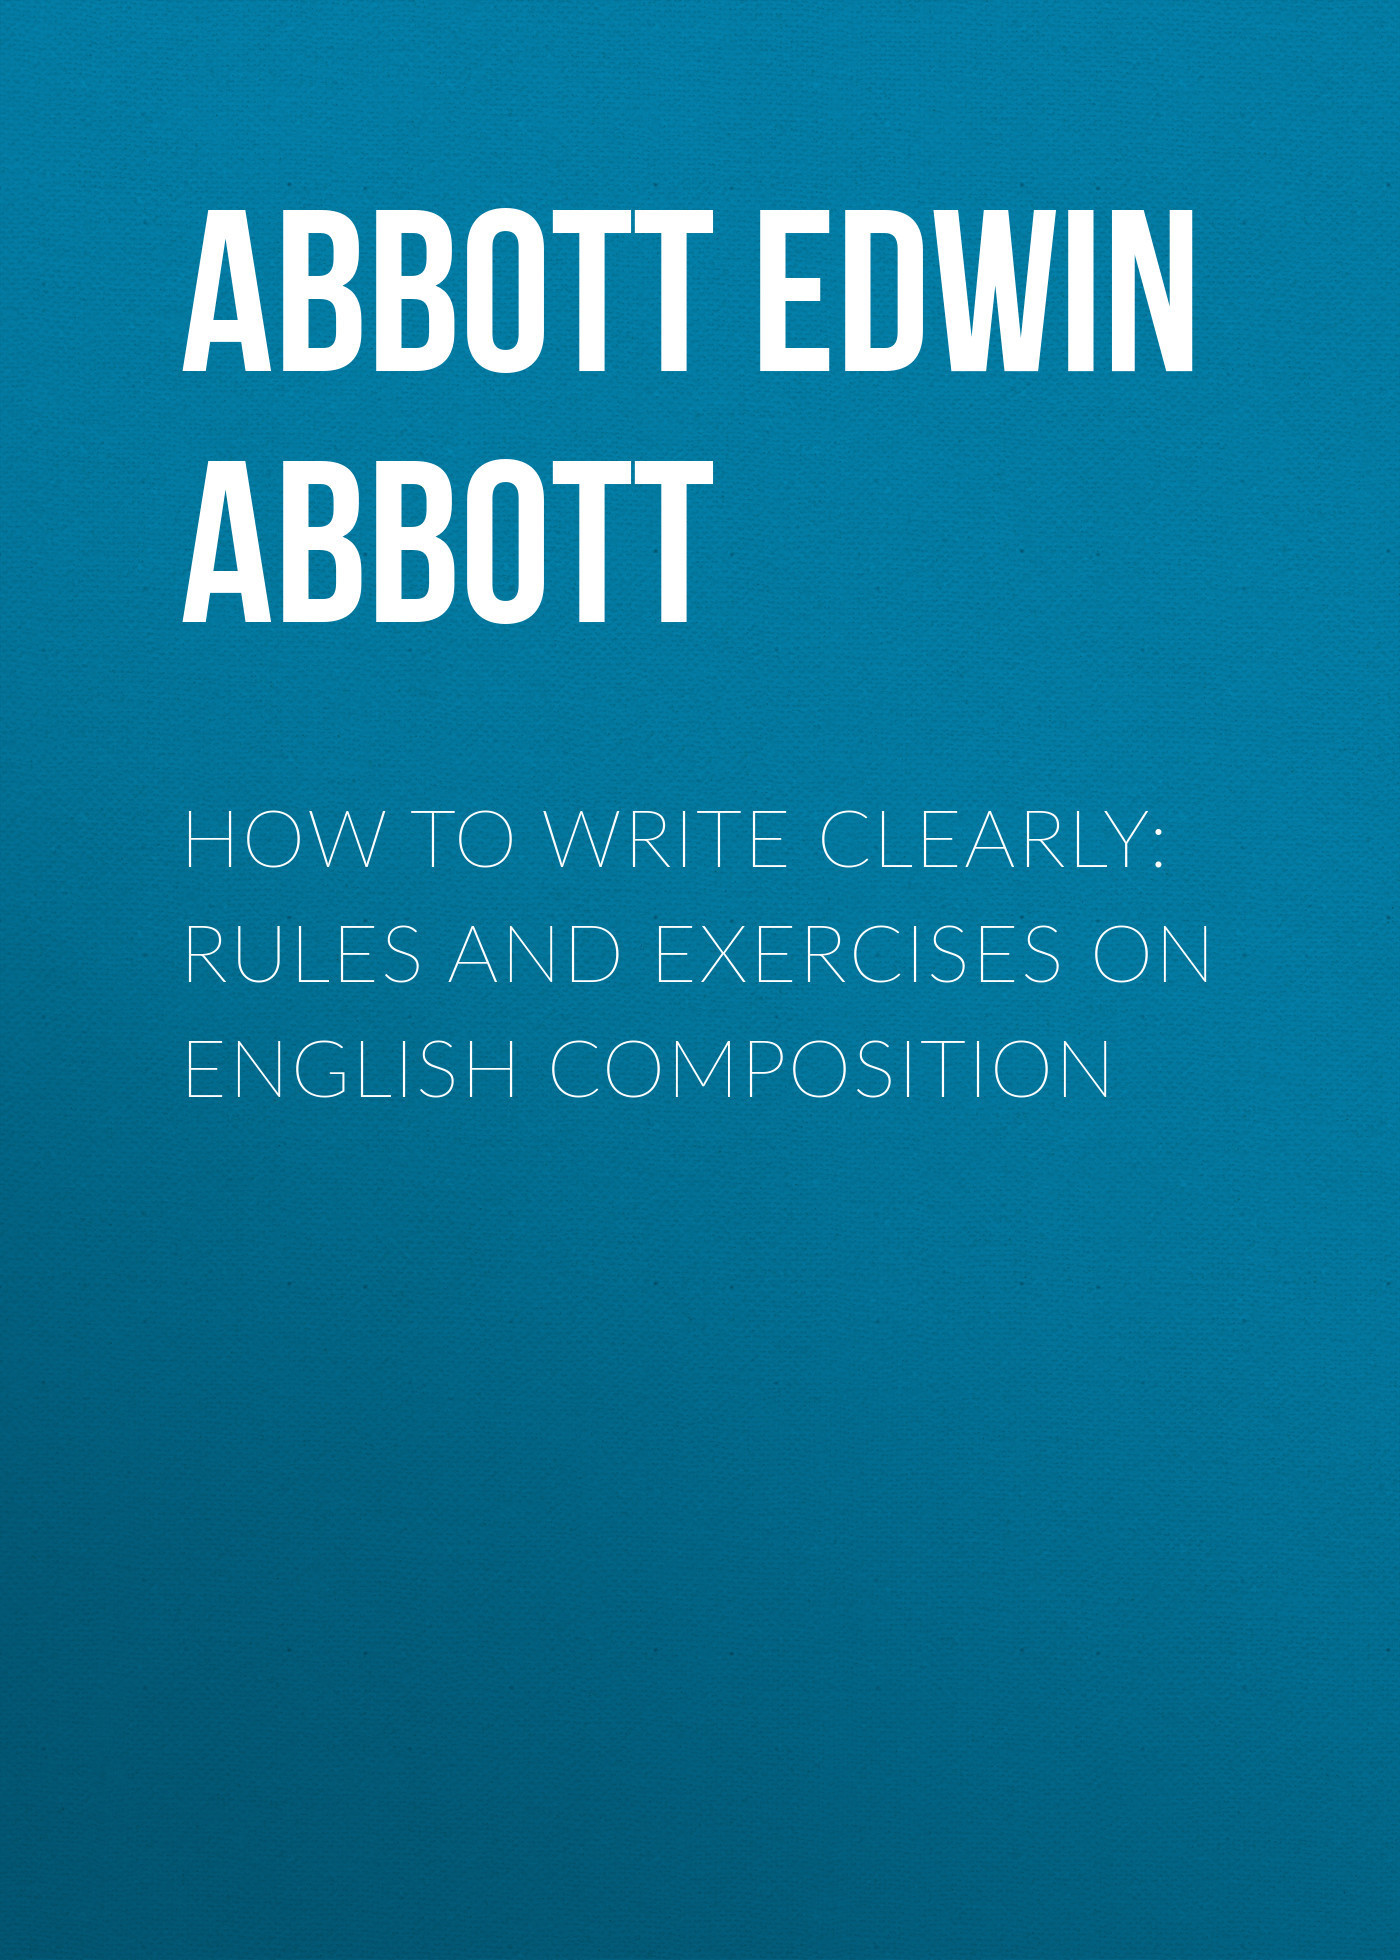 How to Write Clearly: Rules and Exercises on English Composition